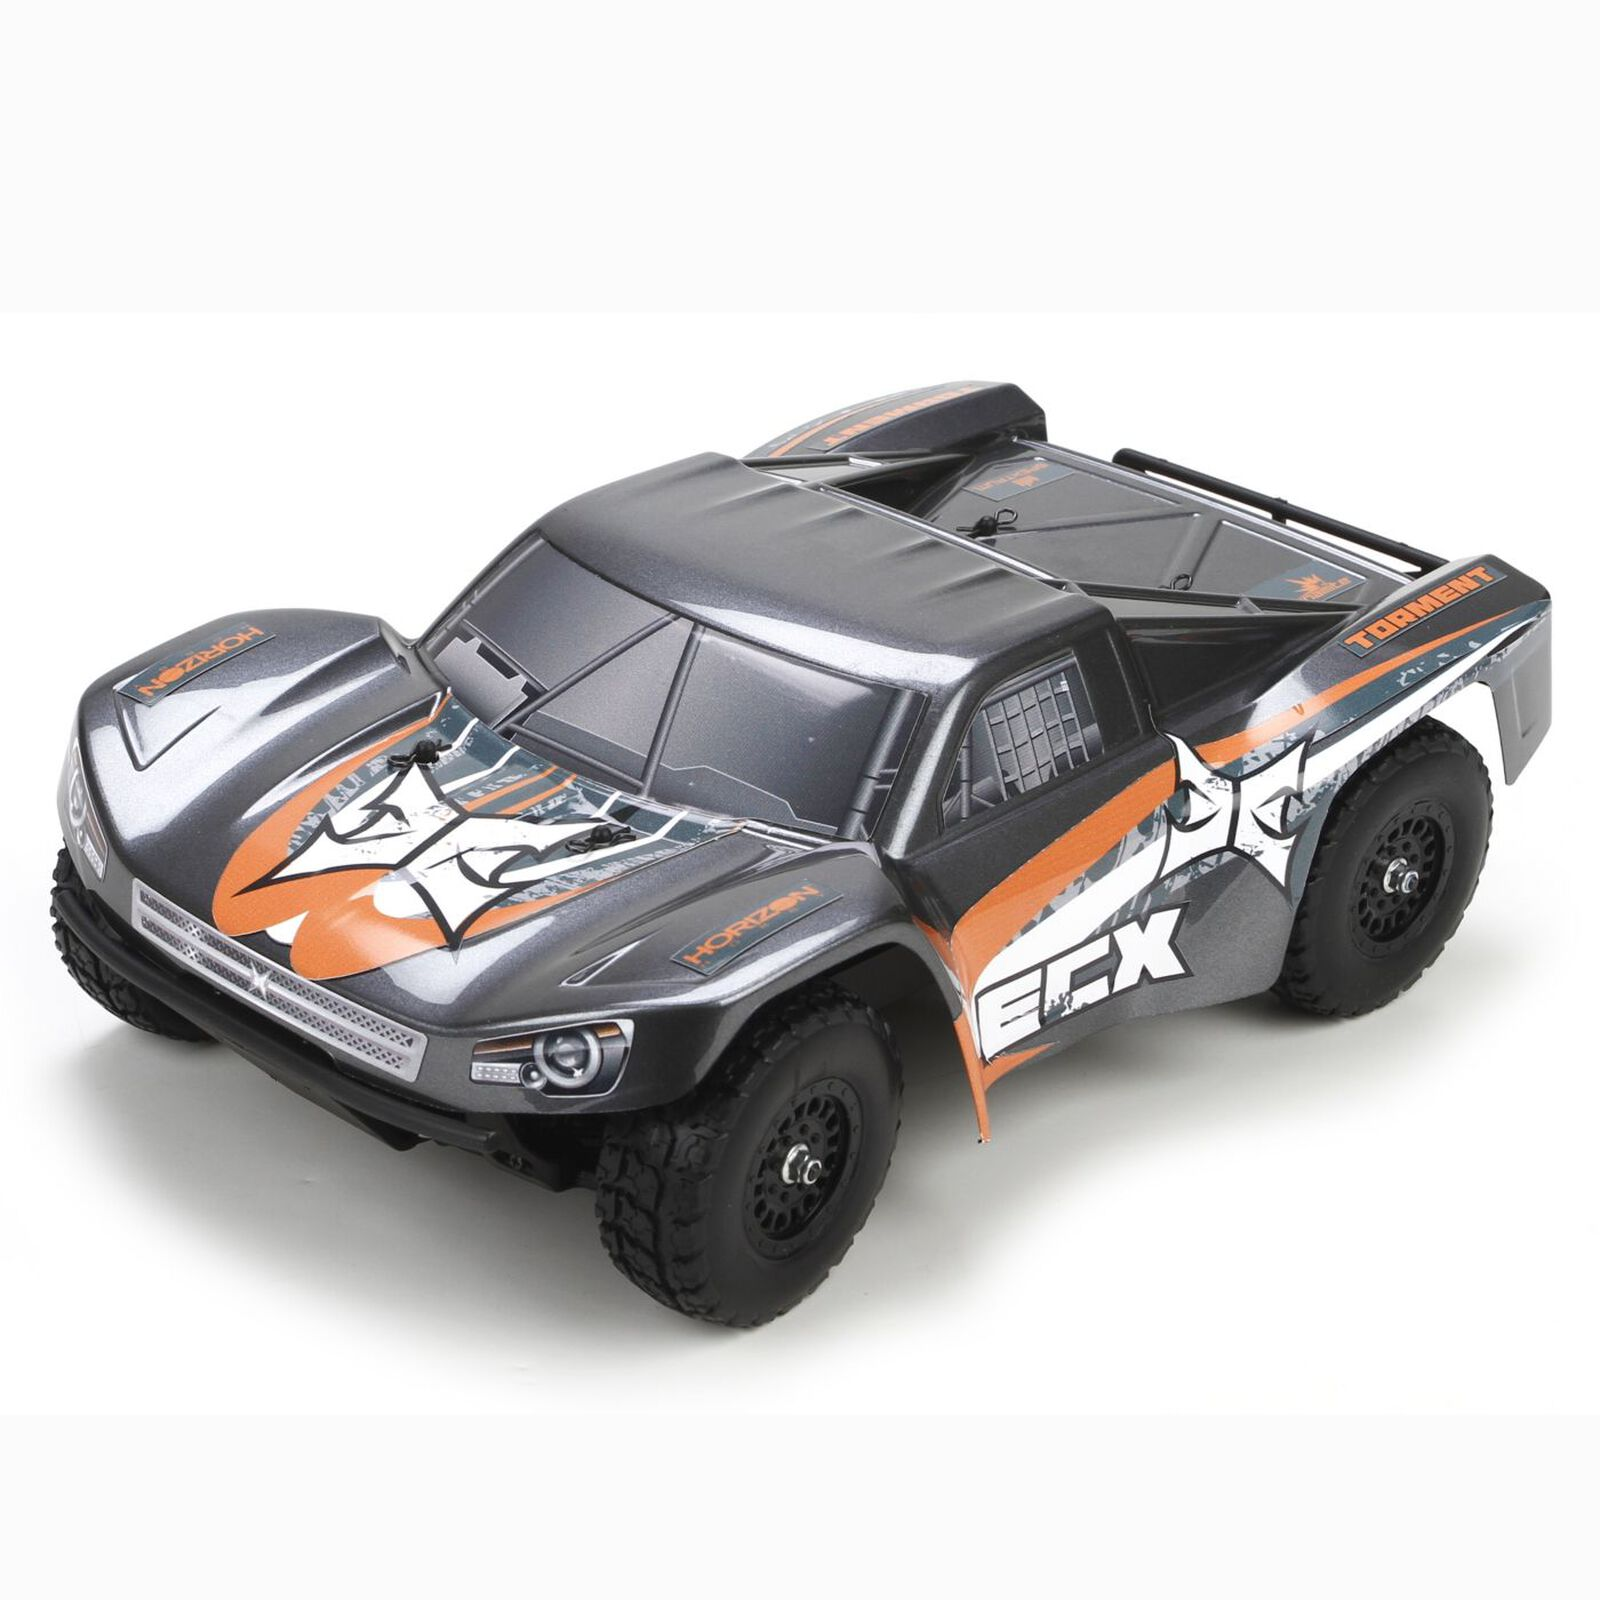 1/18 Torment 4WD Short Course Truck RTR